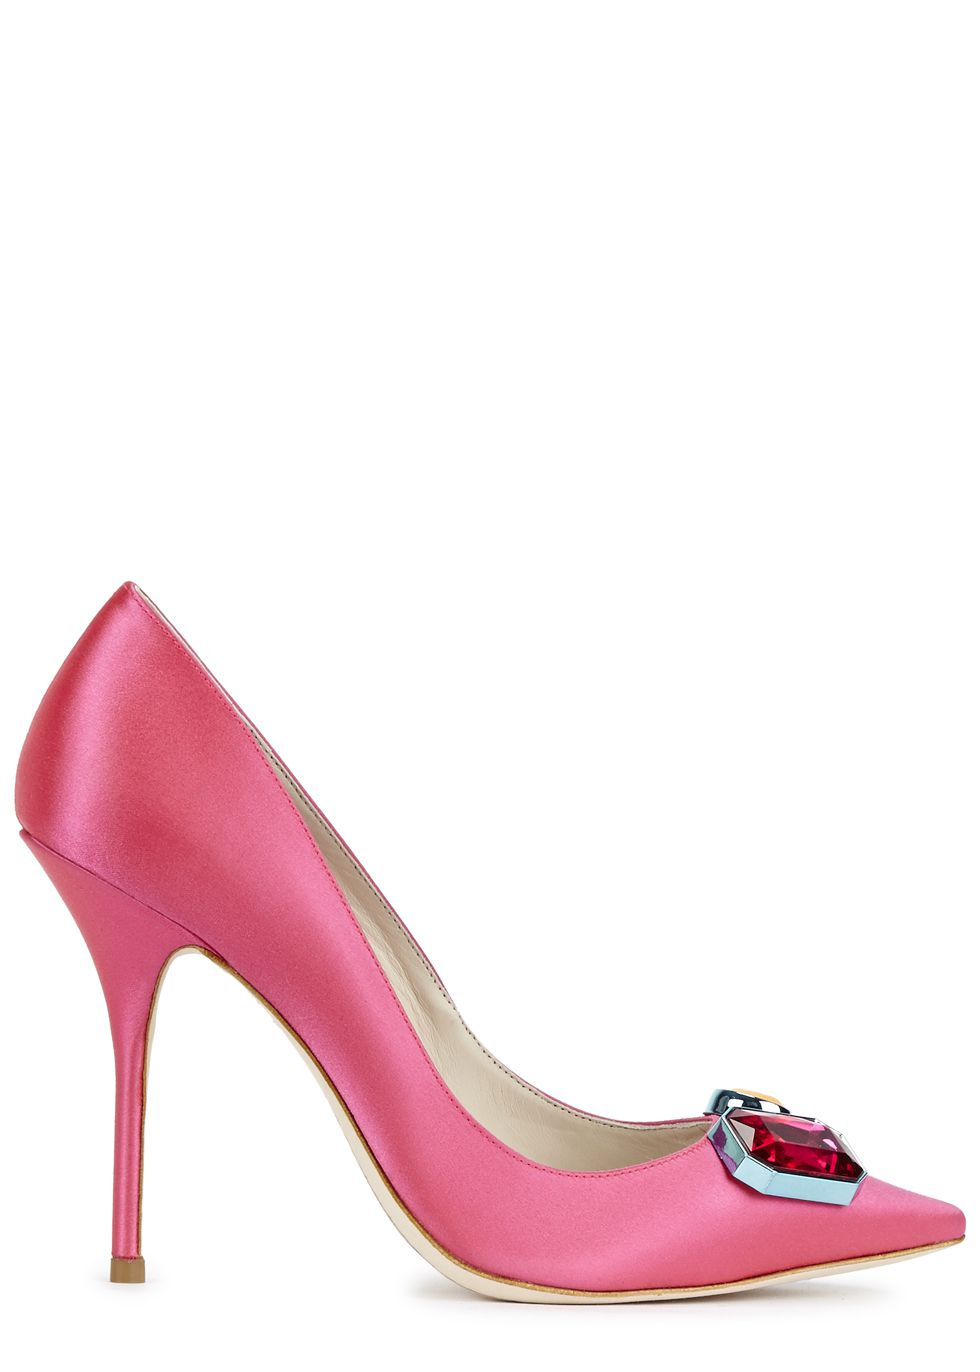 Sophia Webster Exclusive at Harvey Nichols - Lola Gem bright pink satin ...